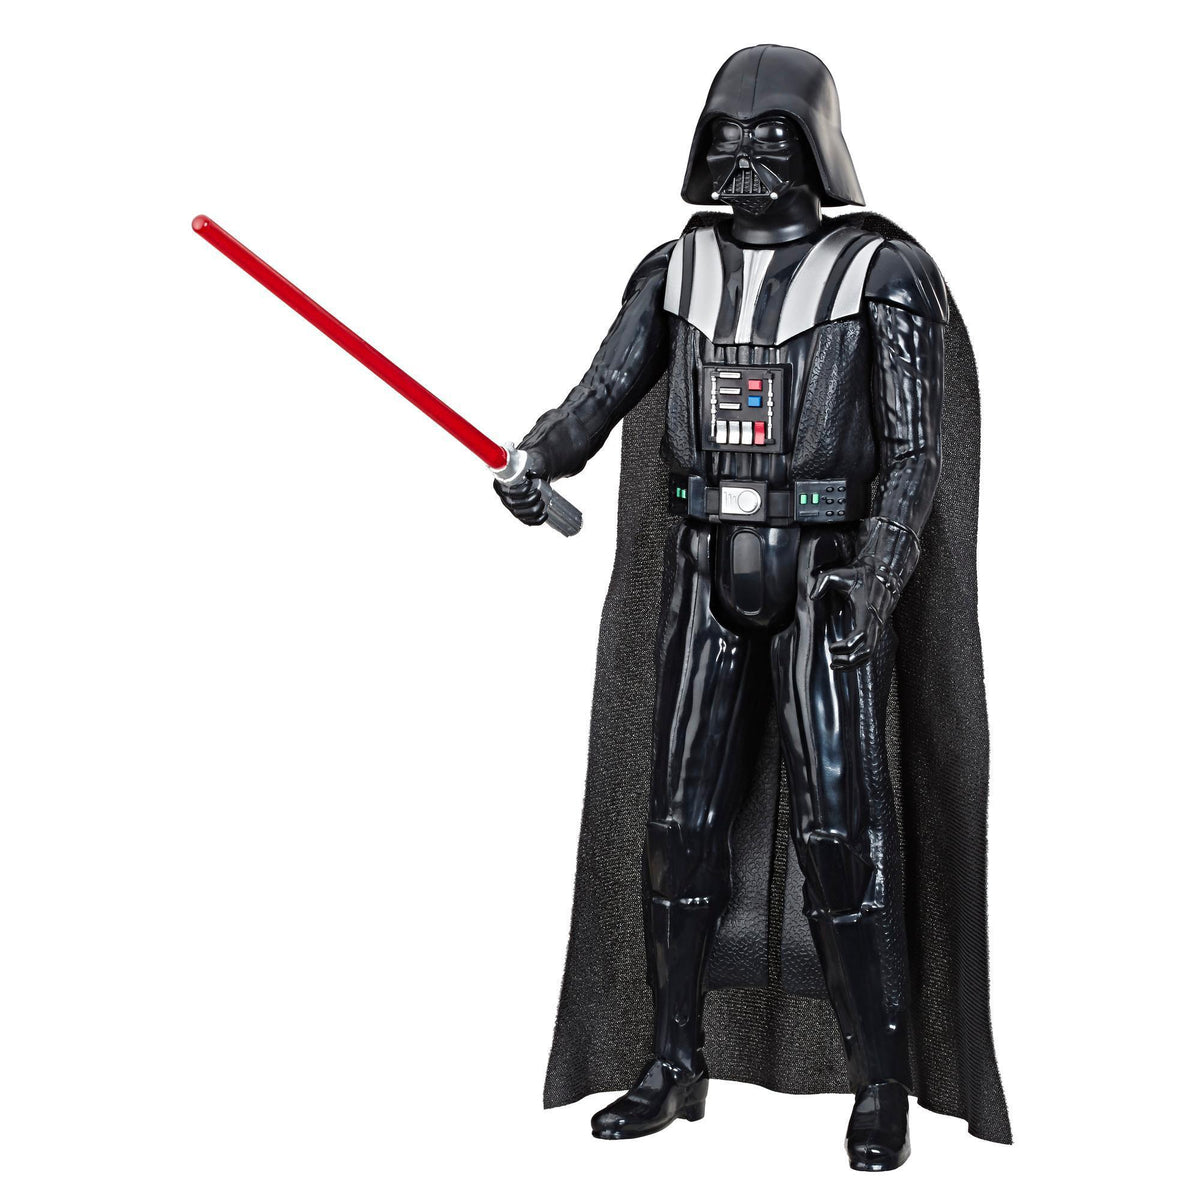 STAR WARS HERO SERIES: DARTH VADER 12-INCH SCALE ACTION FIGURE WITH LIGHTSABER ACCESSORY